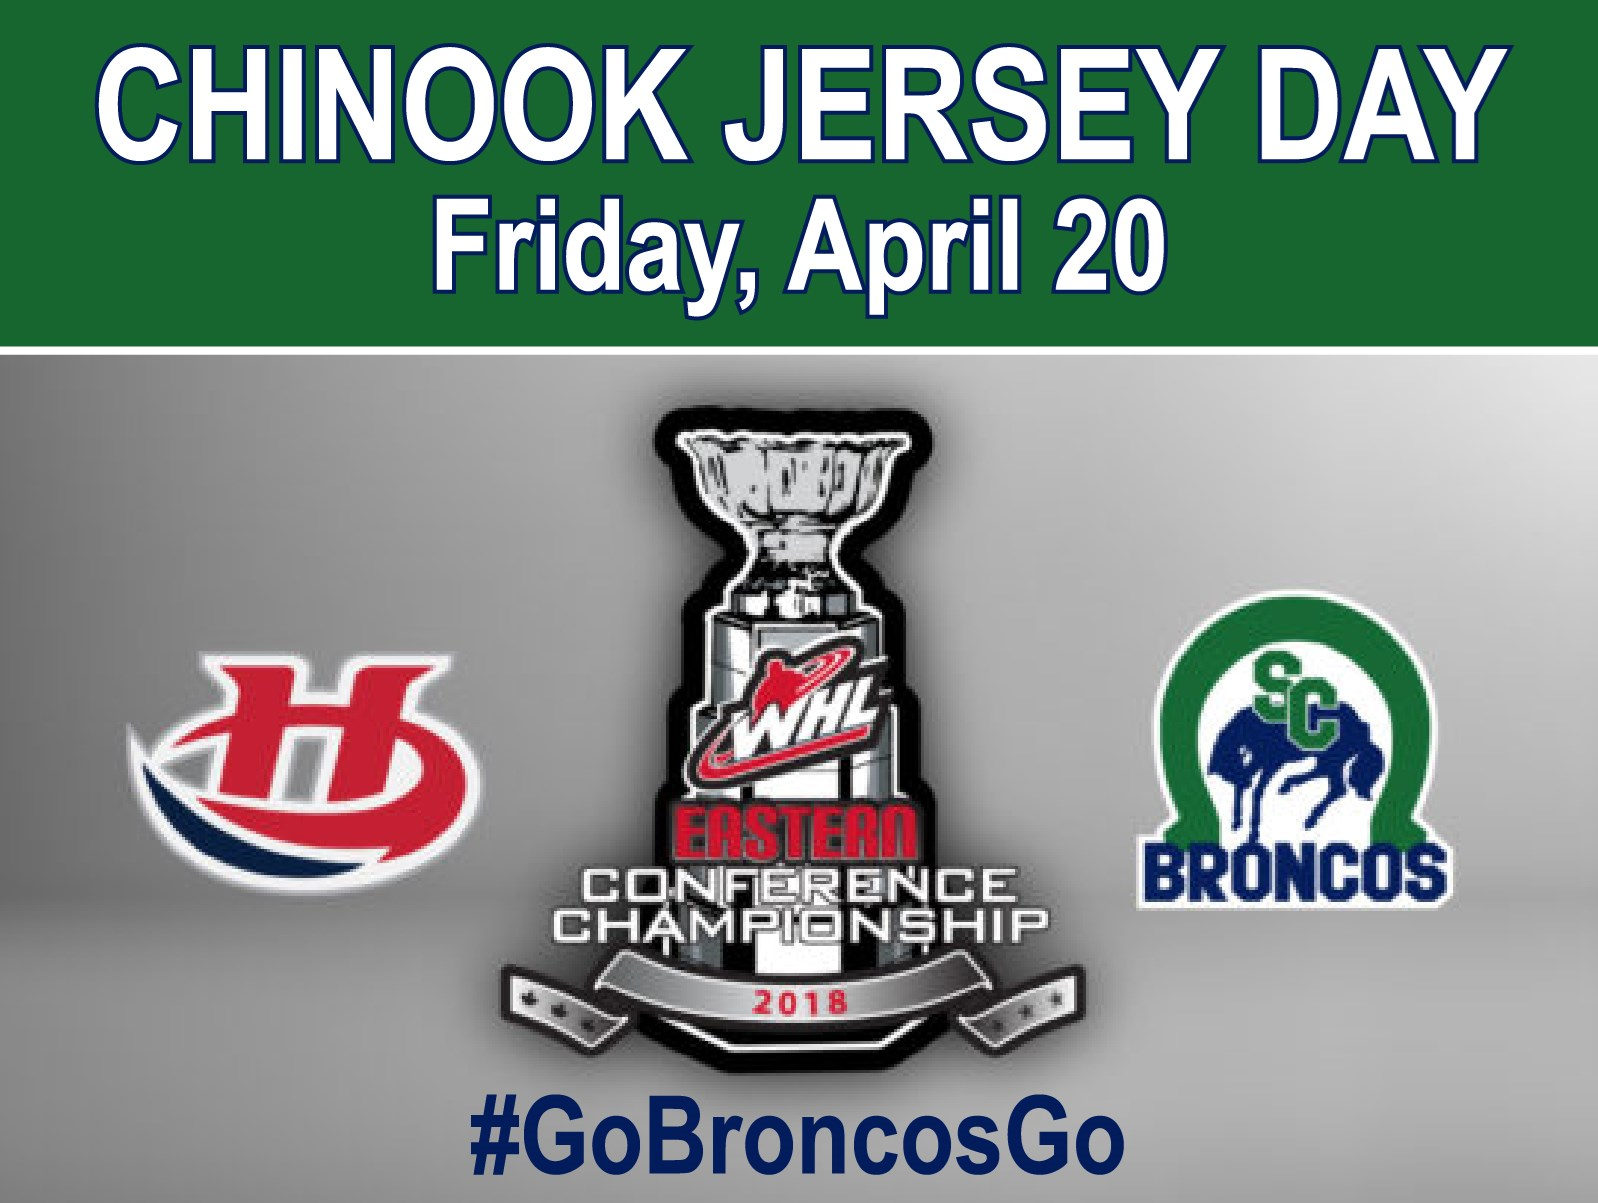 ChinookJerseyDay%20Apr%2020.jpg